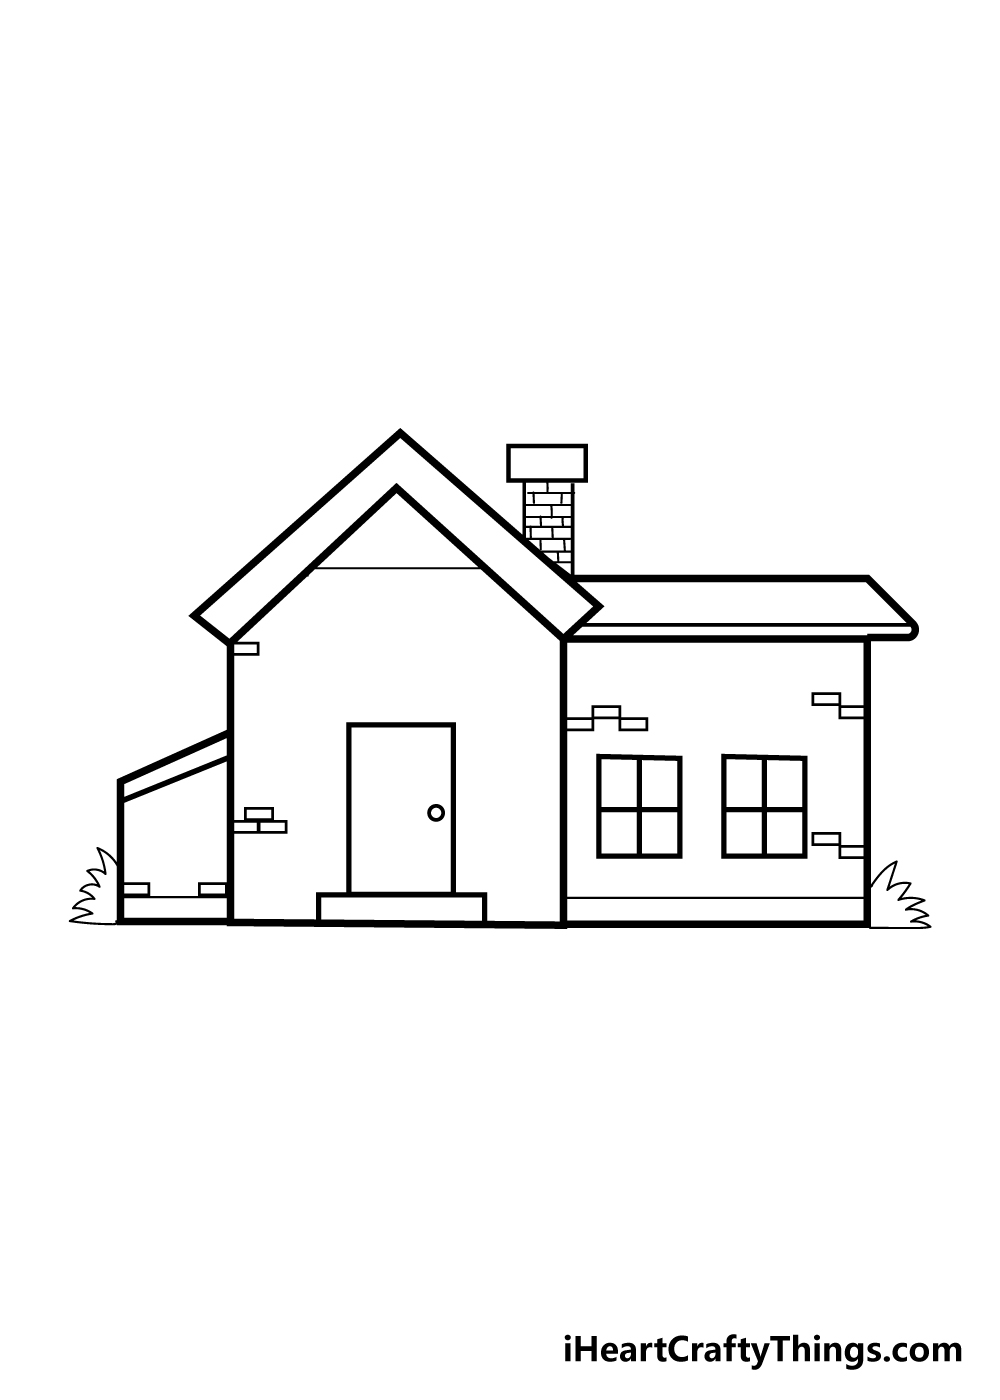 house drawing step 7